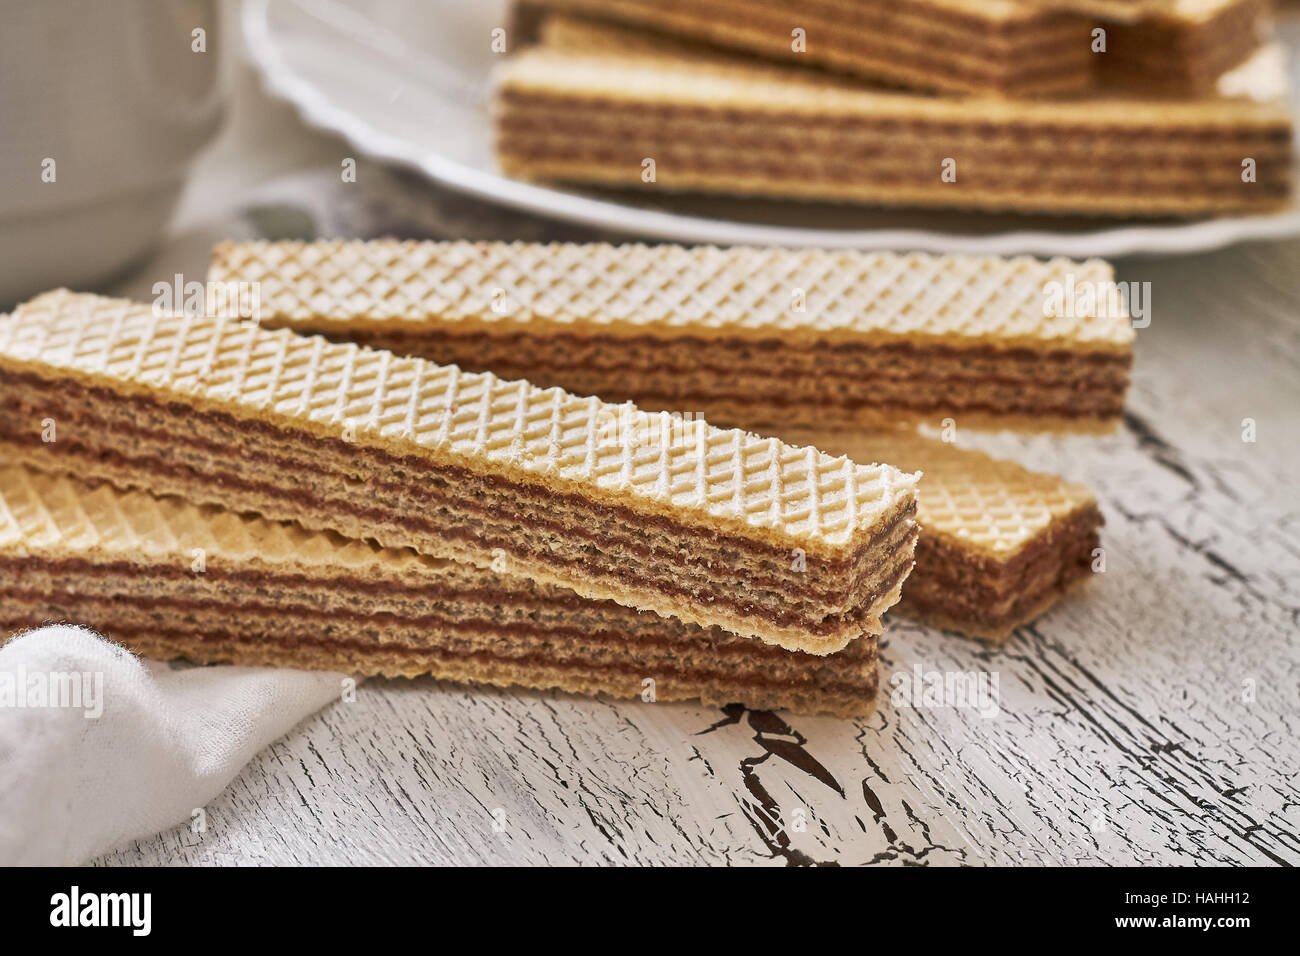 Wafer biscuits with chocolate cream on white rustic wooden background - Stock Image